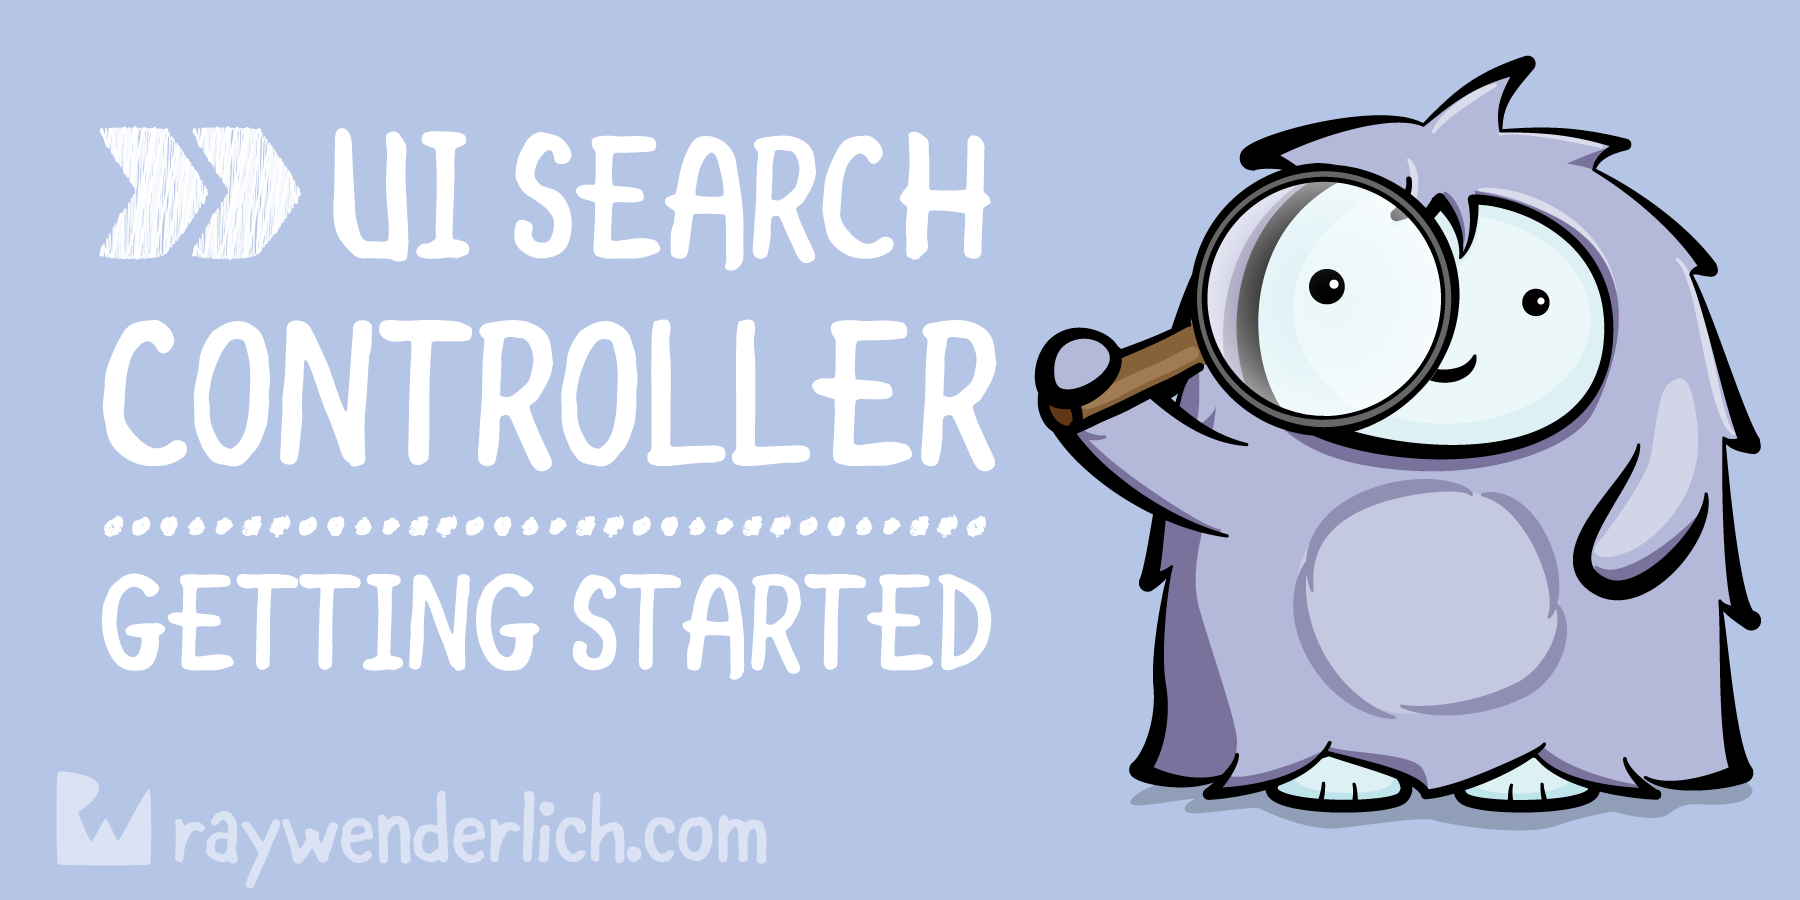 UISearchController Tutorial: Getting Started